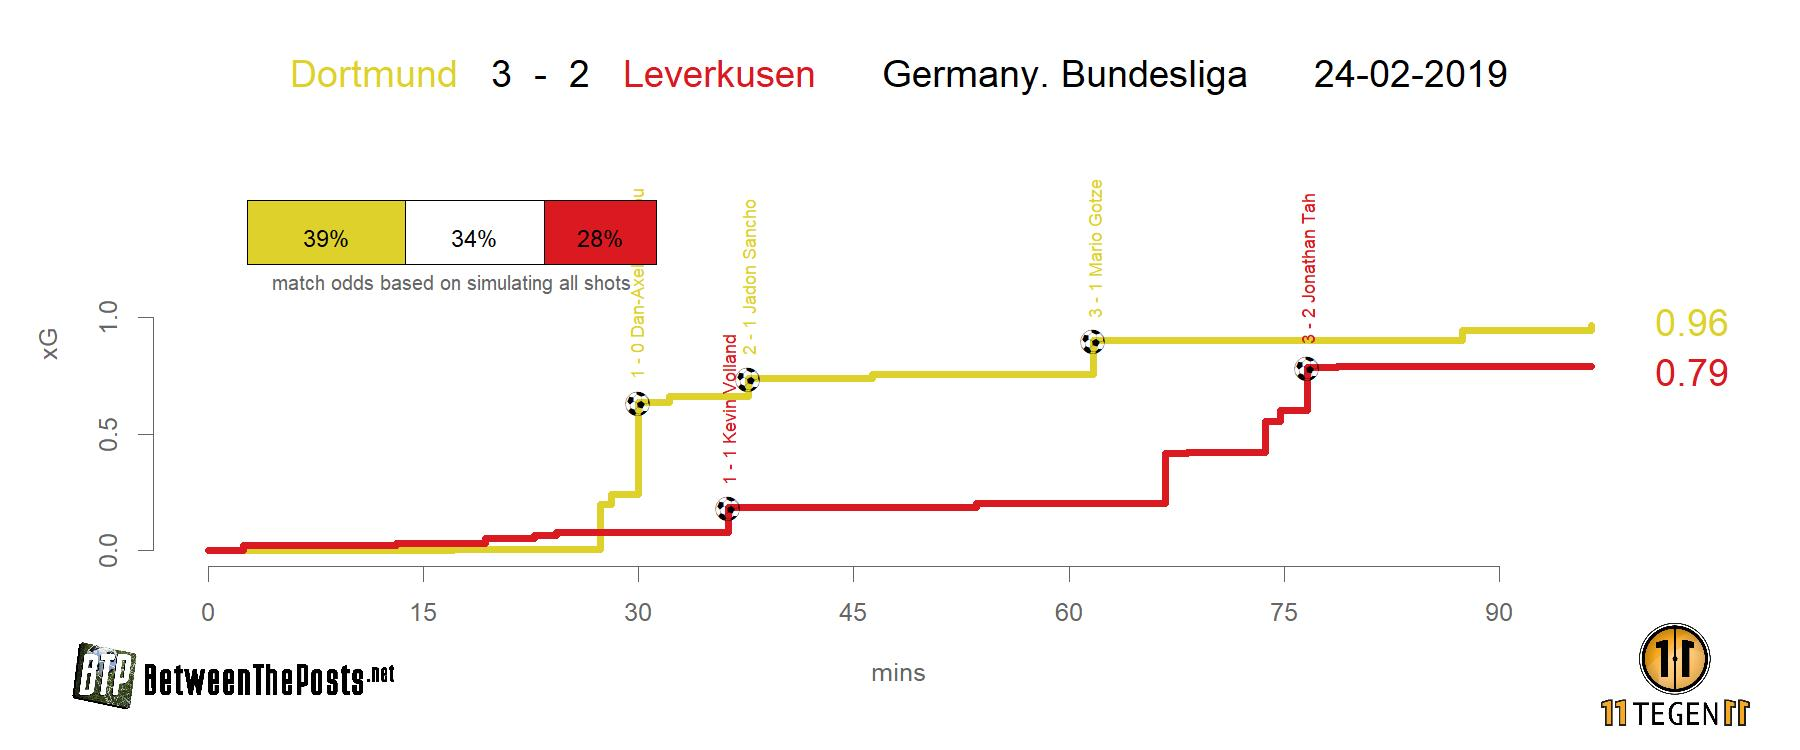 Expected goals plot Borussia Dortmund - Bayer Leverkusen 3-2 Bundesliga